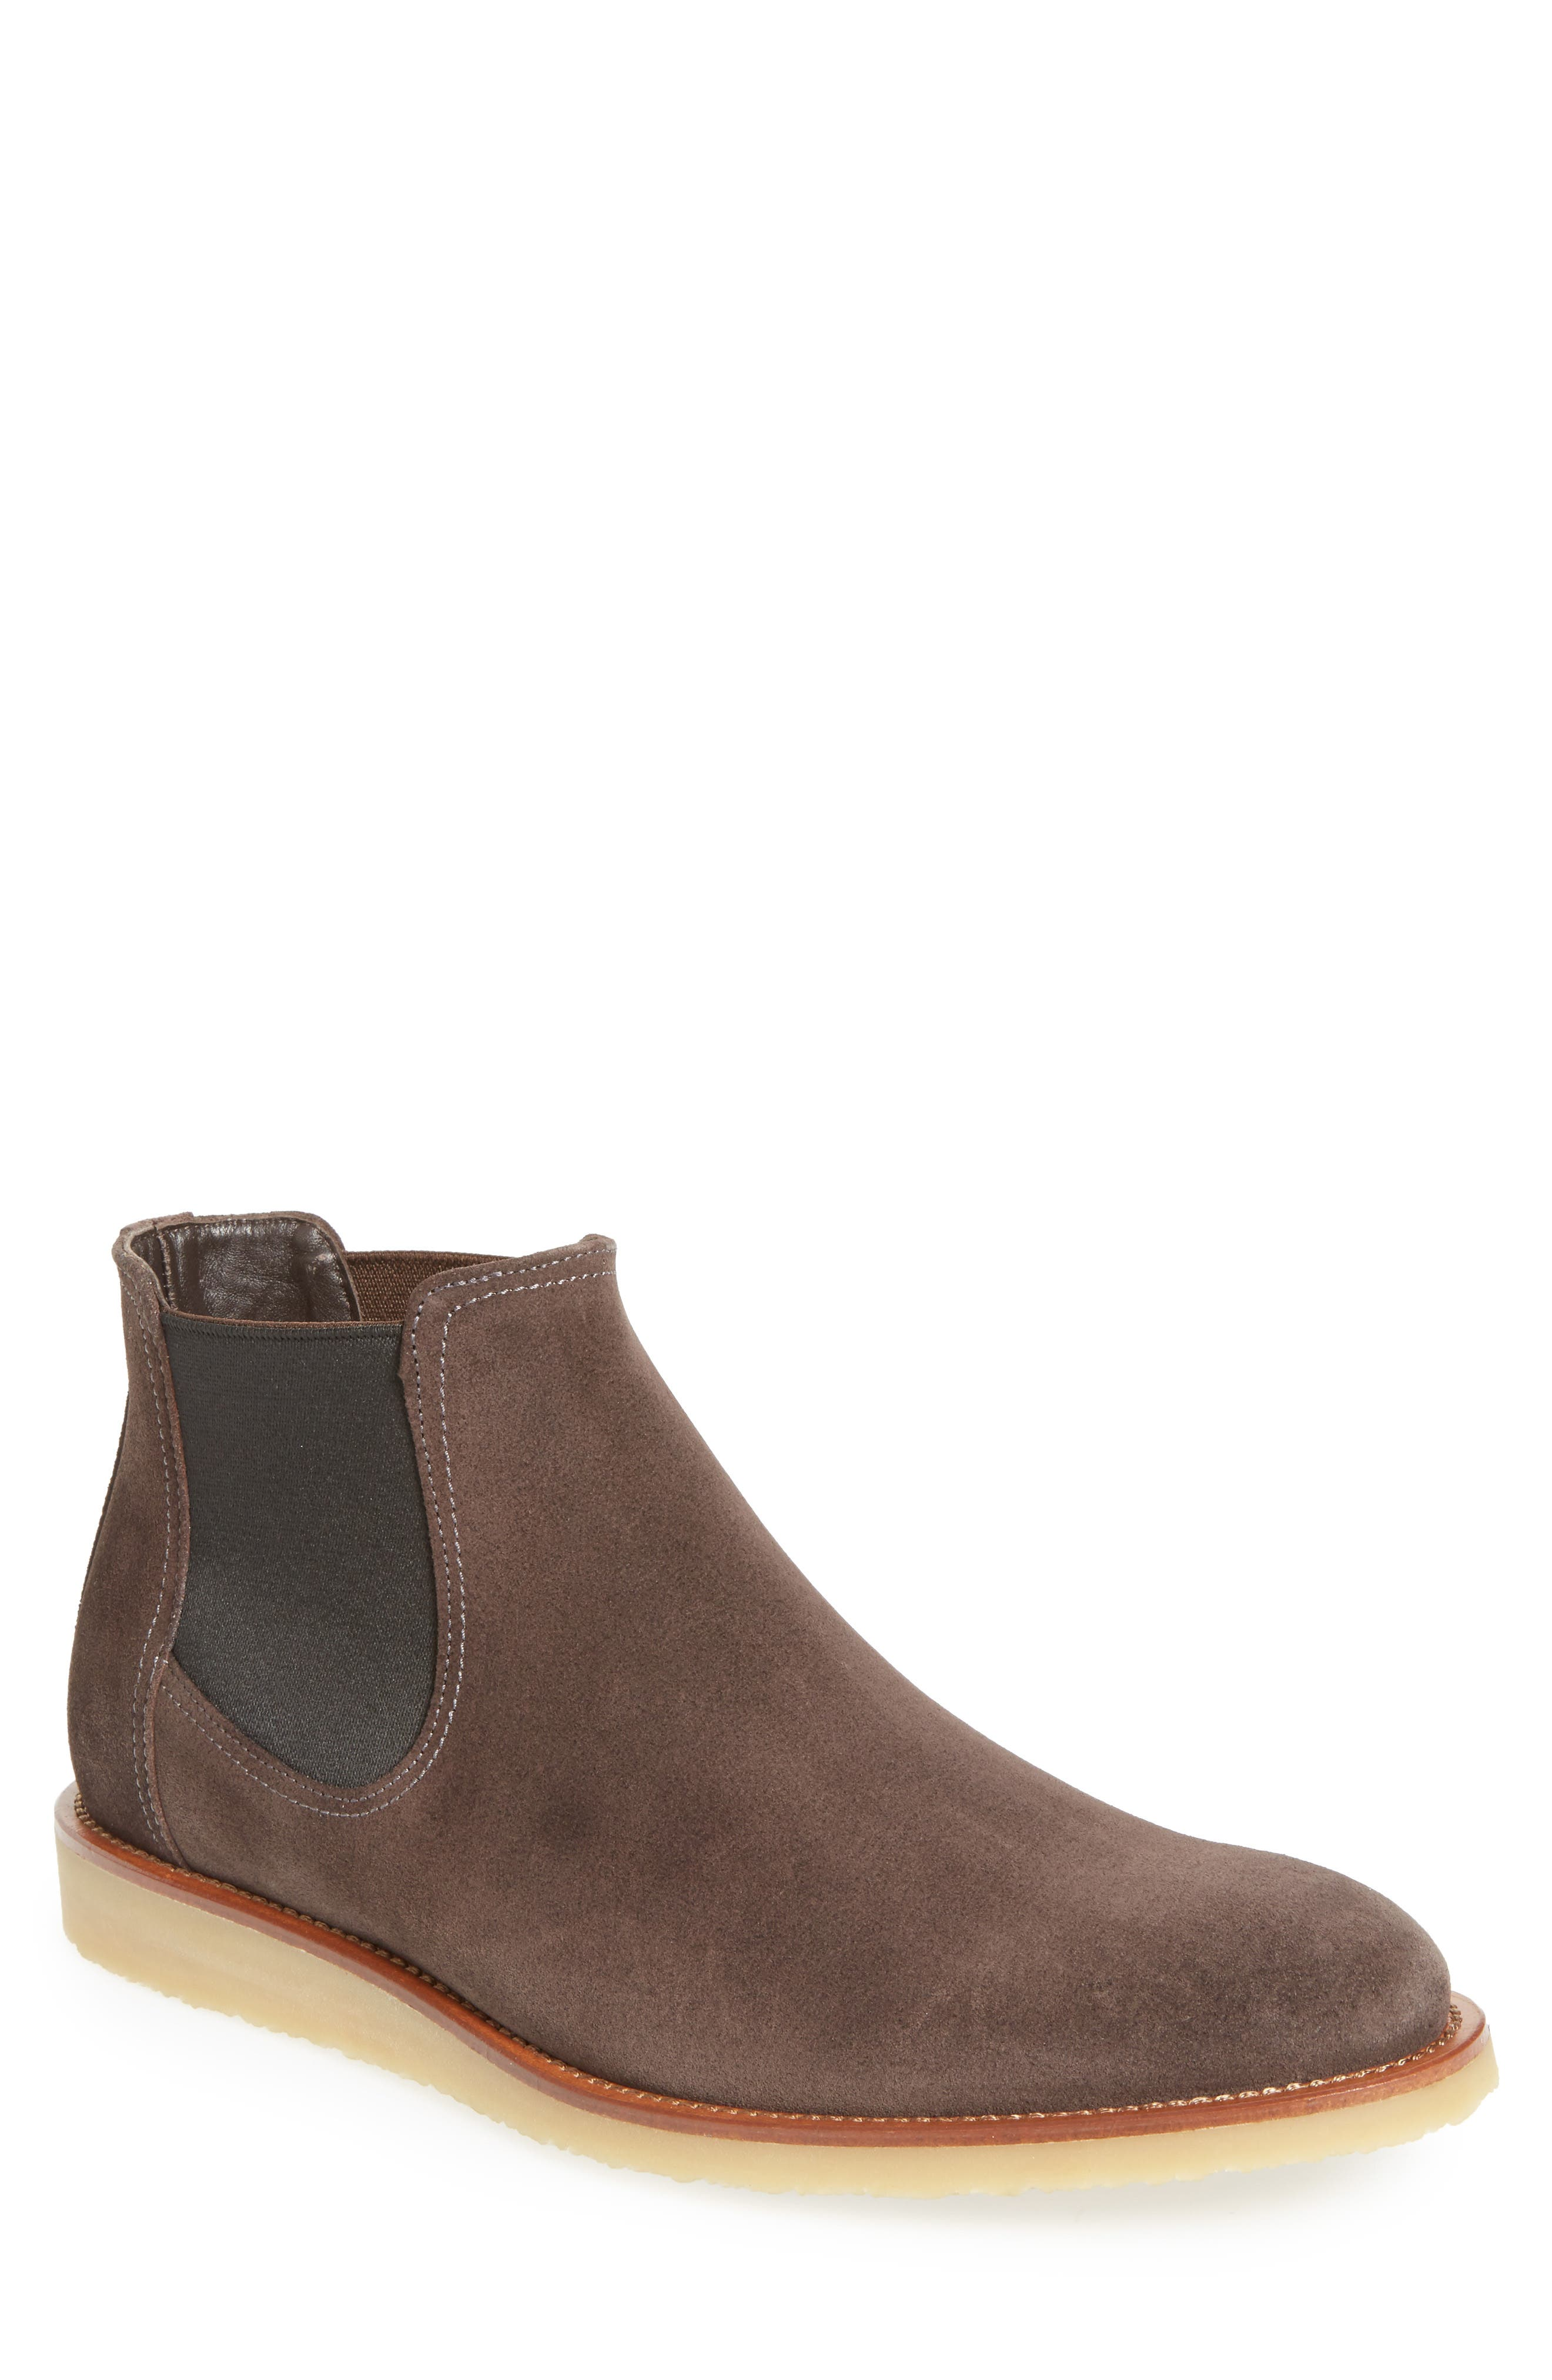 March Chelsea Boot,                             Main thumbnail 1, color,                             033